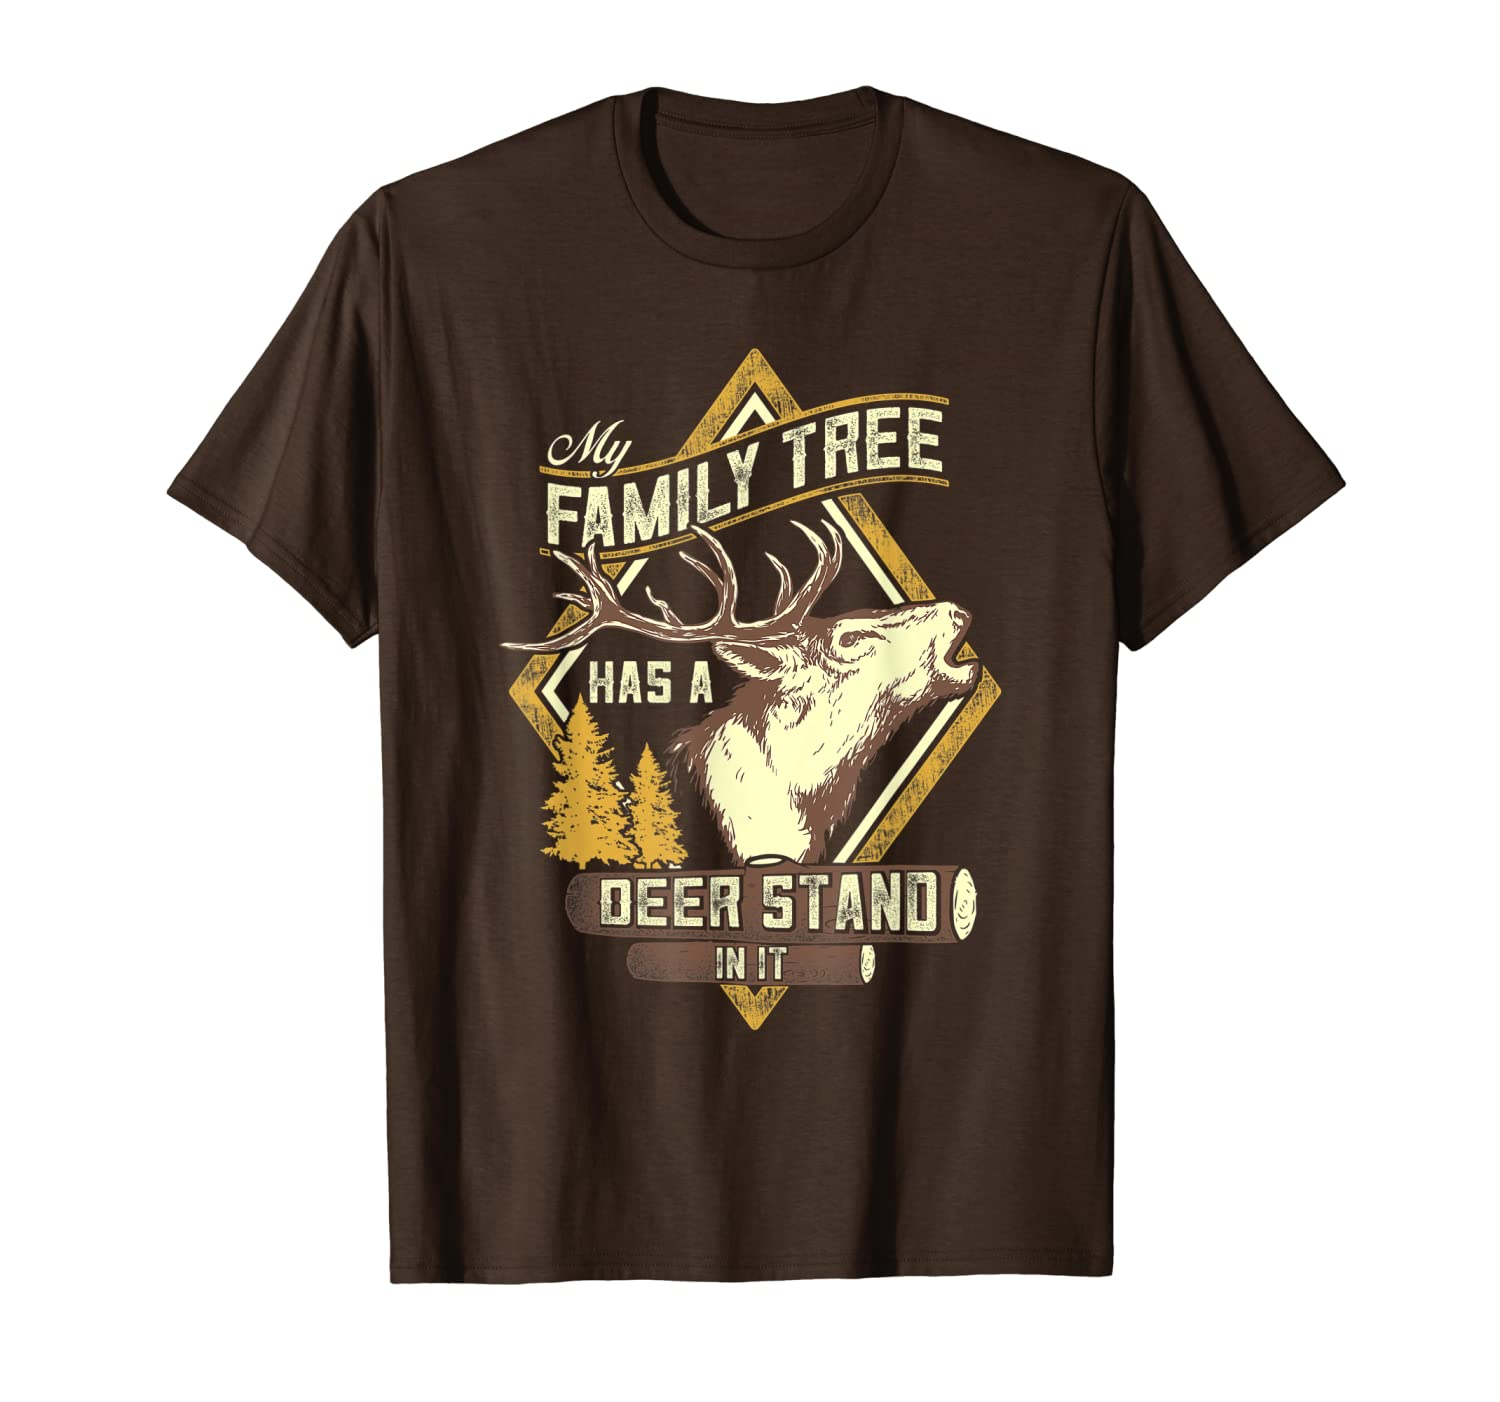 My Family Tree Has A Deer Stand In It - Deer Hunting T-Shirt Unisex Tshirt